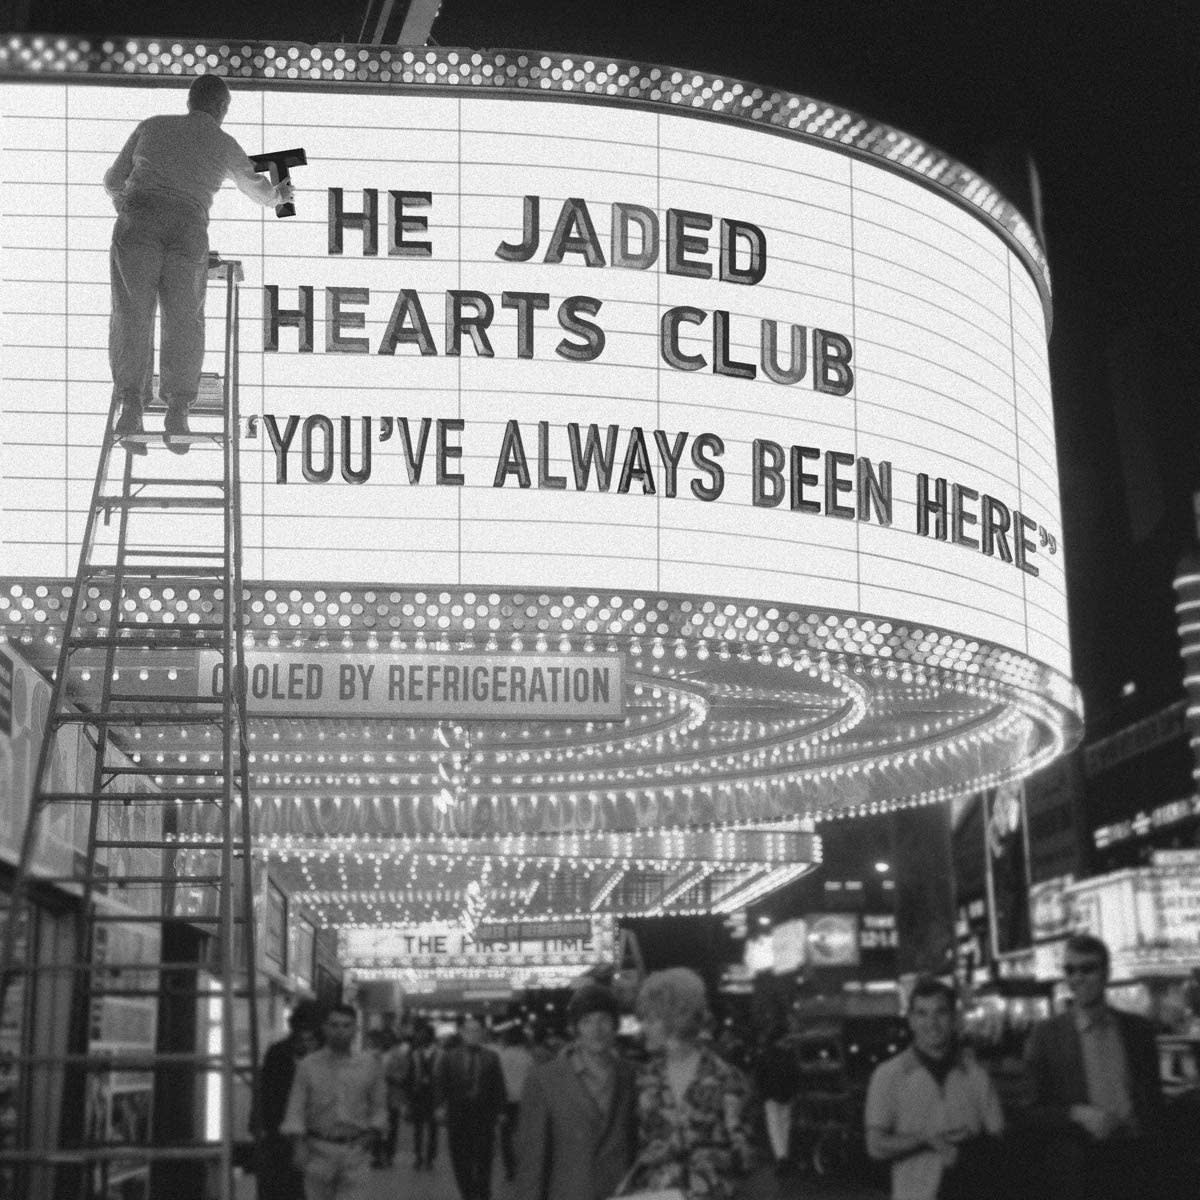 Jaded Hearts Club - You've Always Been Here